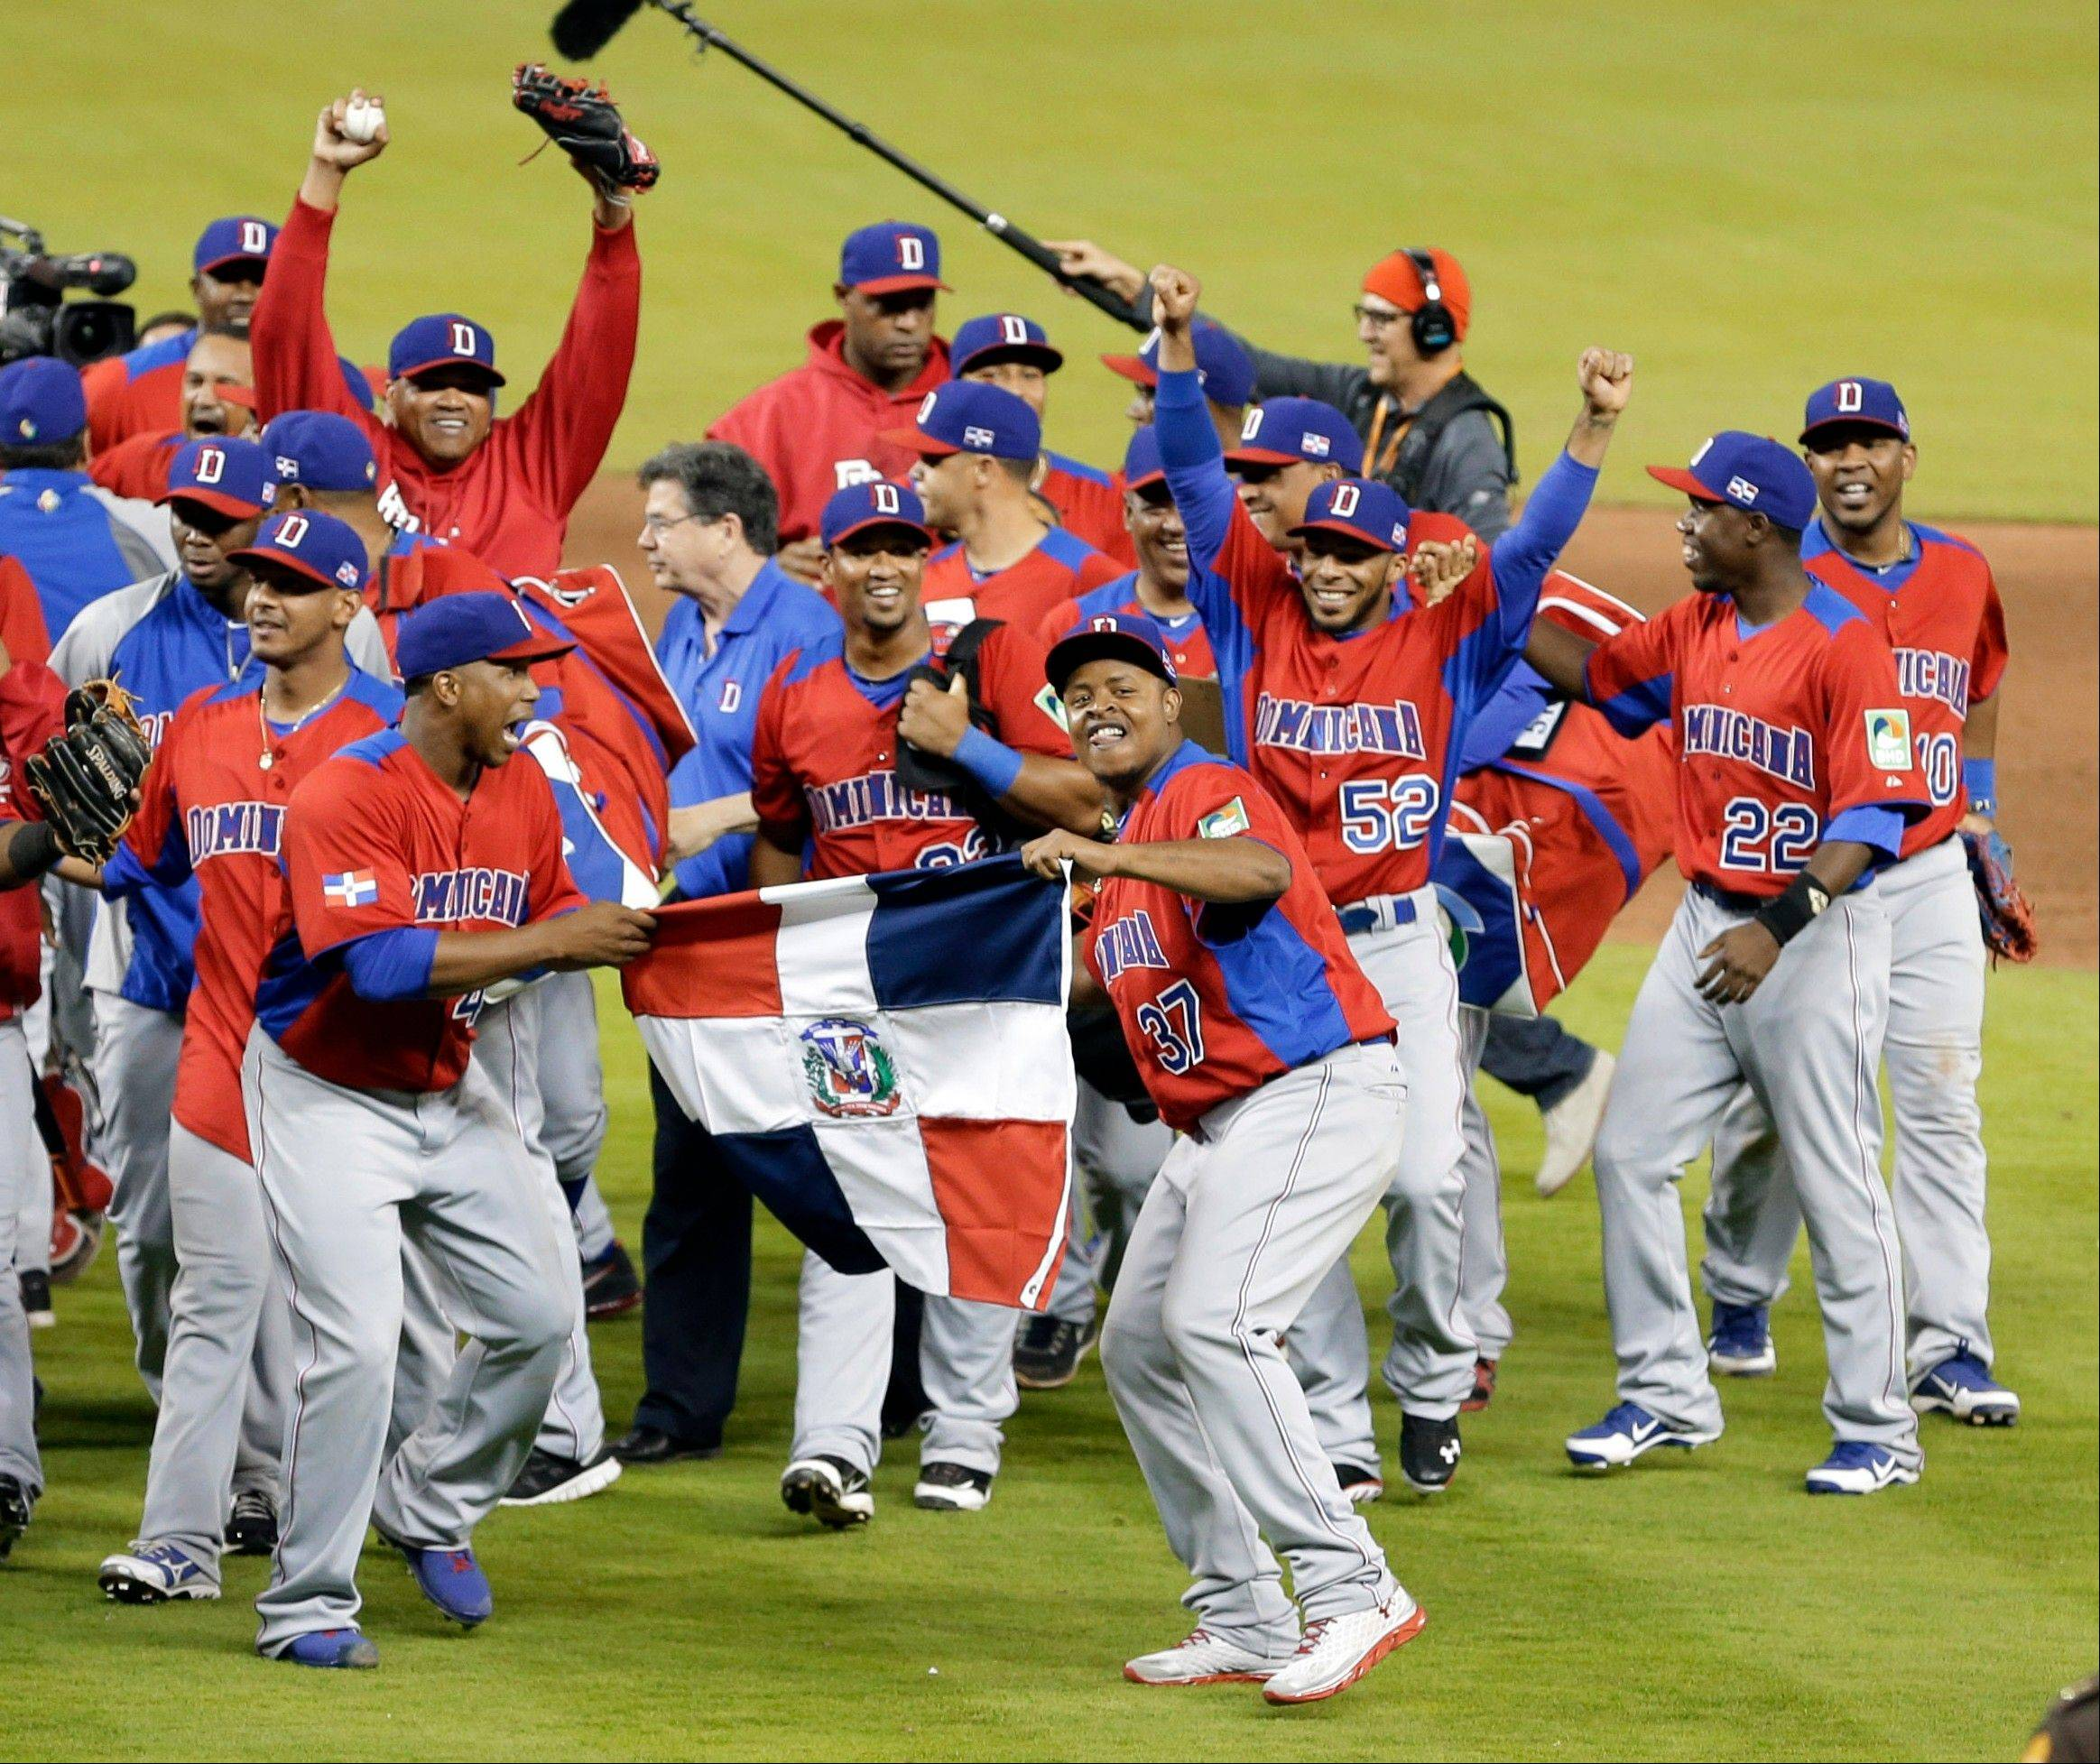 Dominican Republic players celebrate their 3-1 win over the United States during a second-round game of the World Baseball Classic in Miami, Thursday, March 14, 2013. (AP Photo/Alan Diaz)